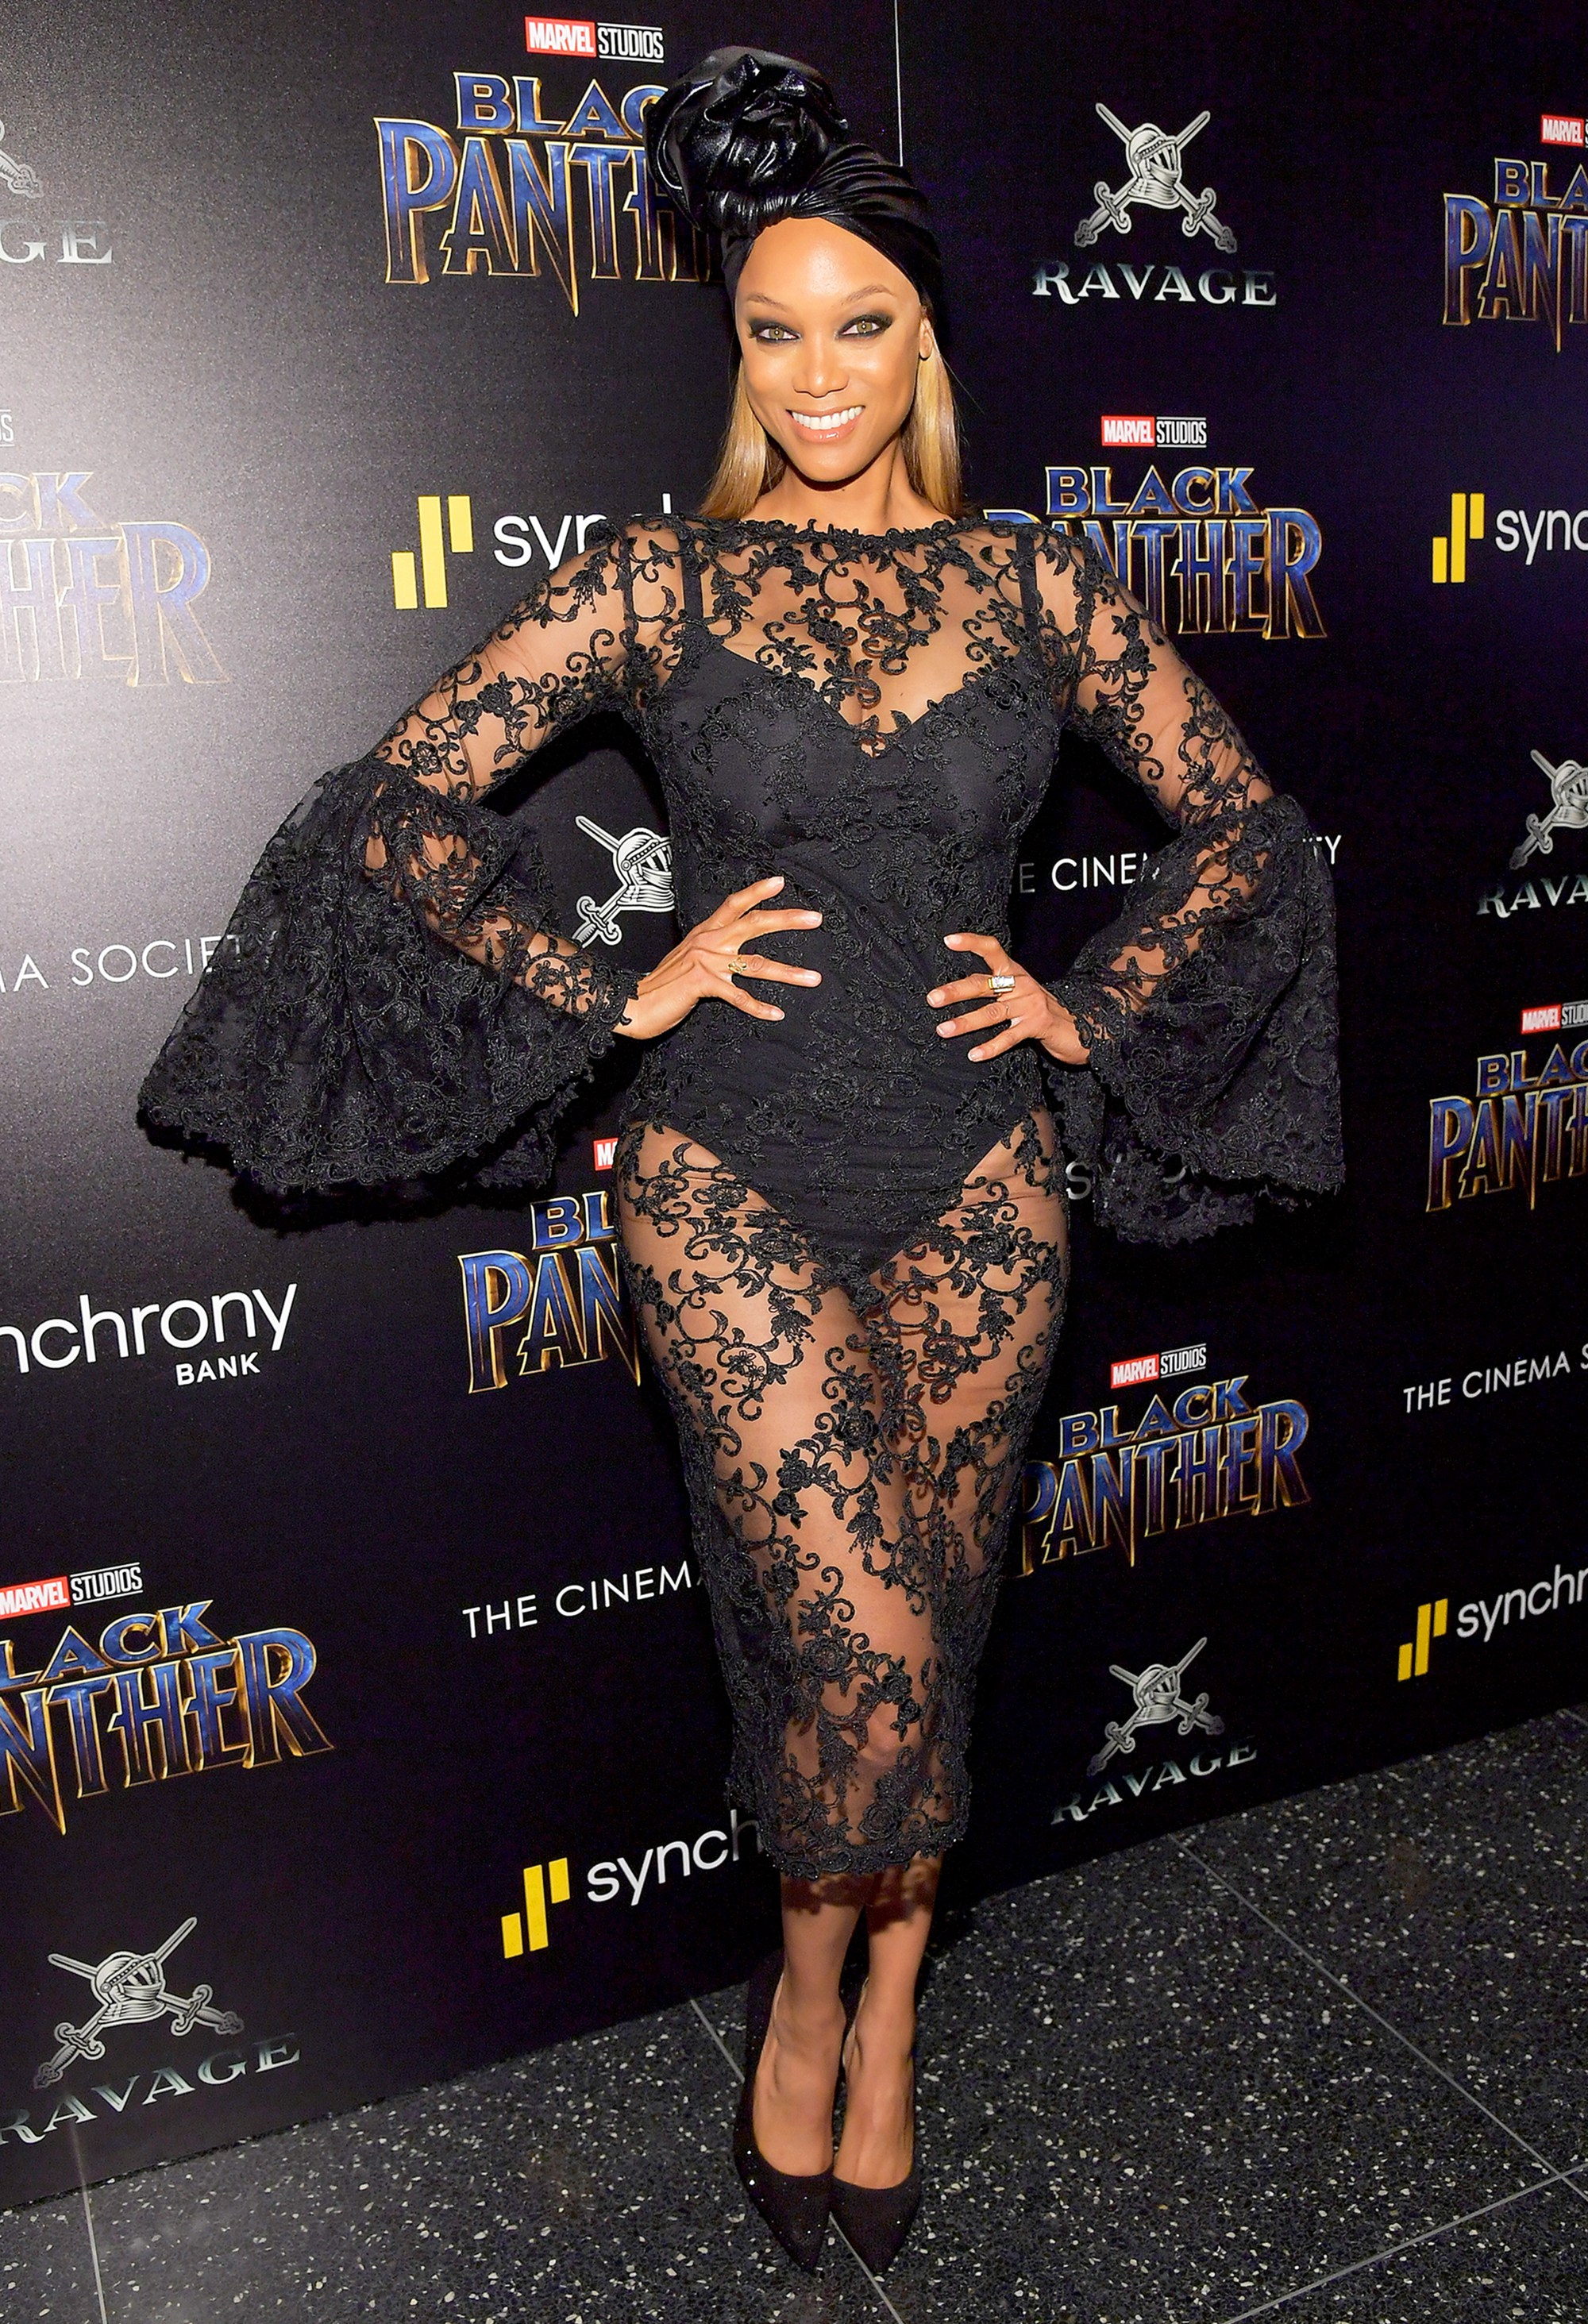 Tyra Banks attends the screening of Marvel Studios' Black Panther hosted by The Cinema Society on February 13, 2018 in New York City.